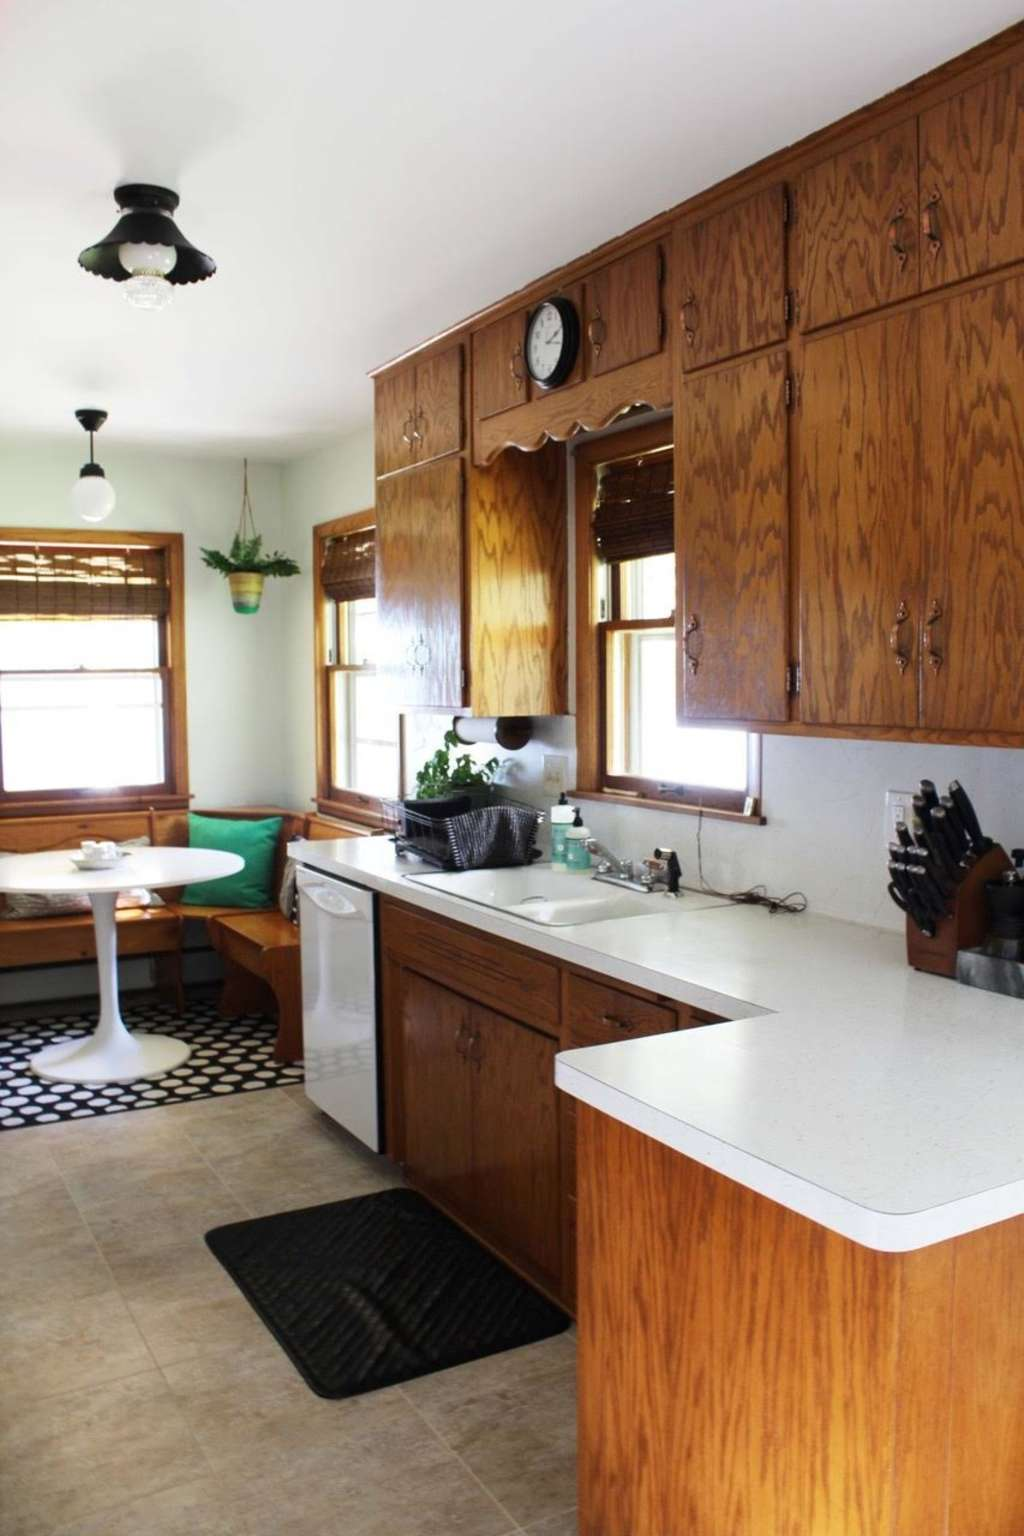 Before & After: An Amazing $200 Kitchen Makeover